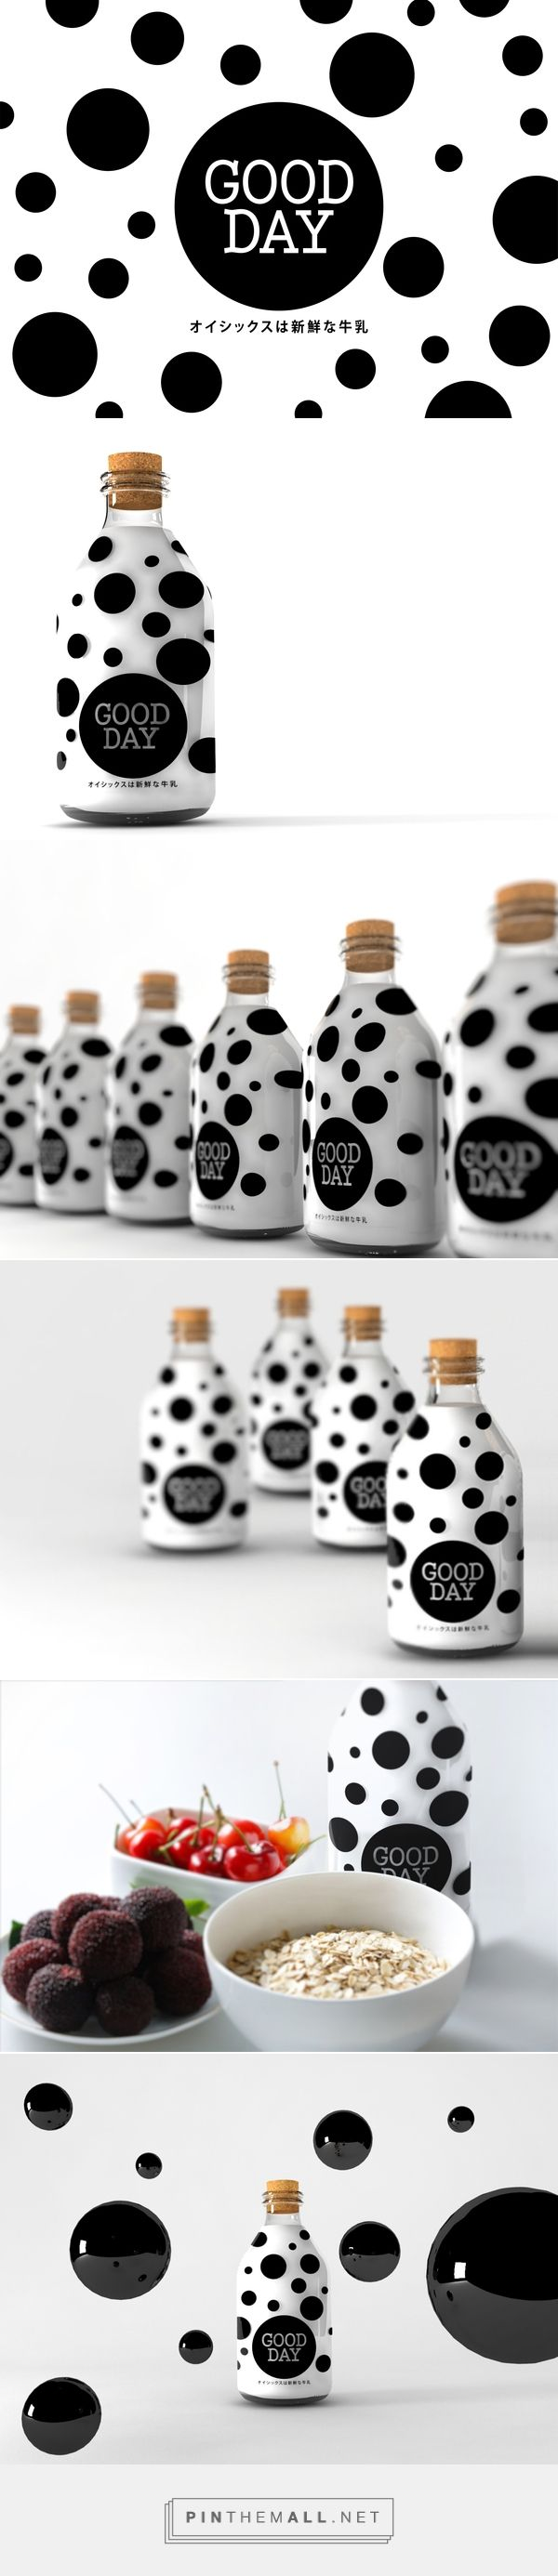 GOOD DAY MILK PACKAGING on Behance curated by Packaging Diva PD. Not exactly the same Jeny but still cute packaging.